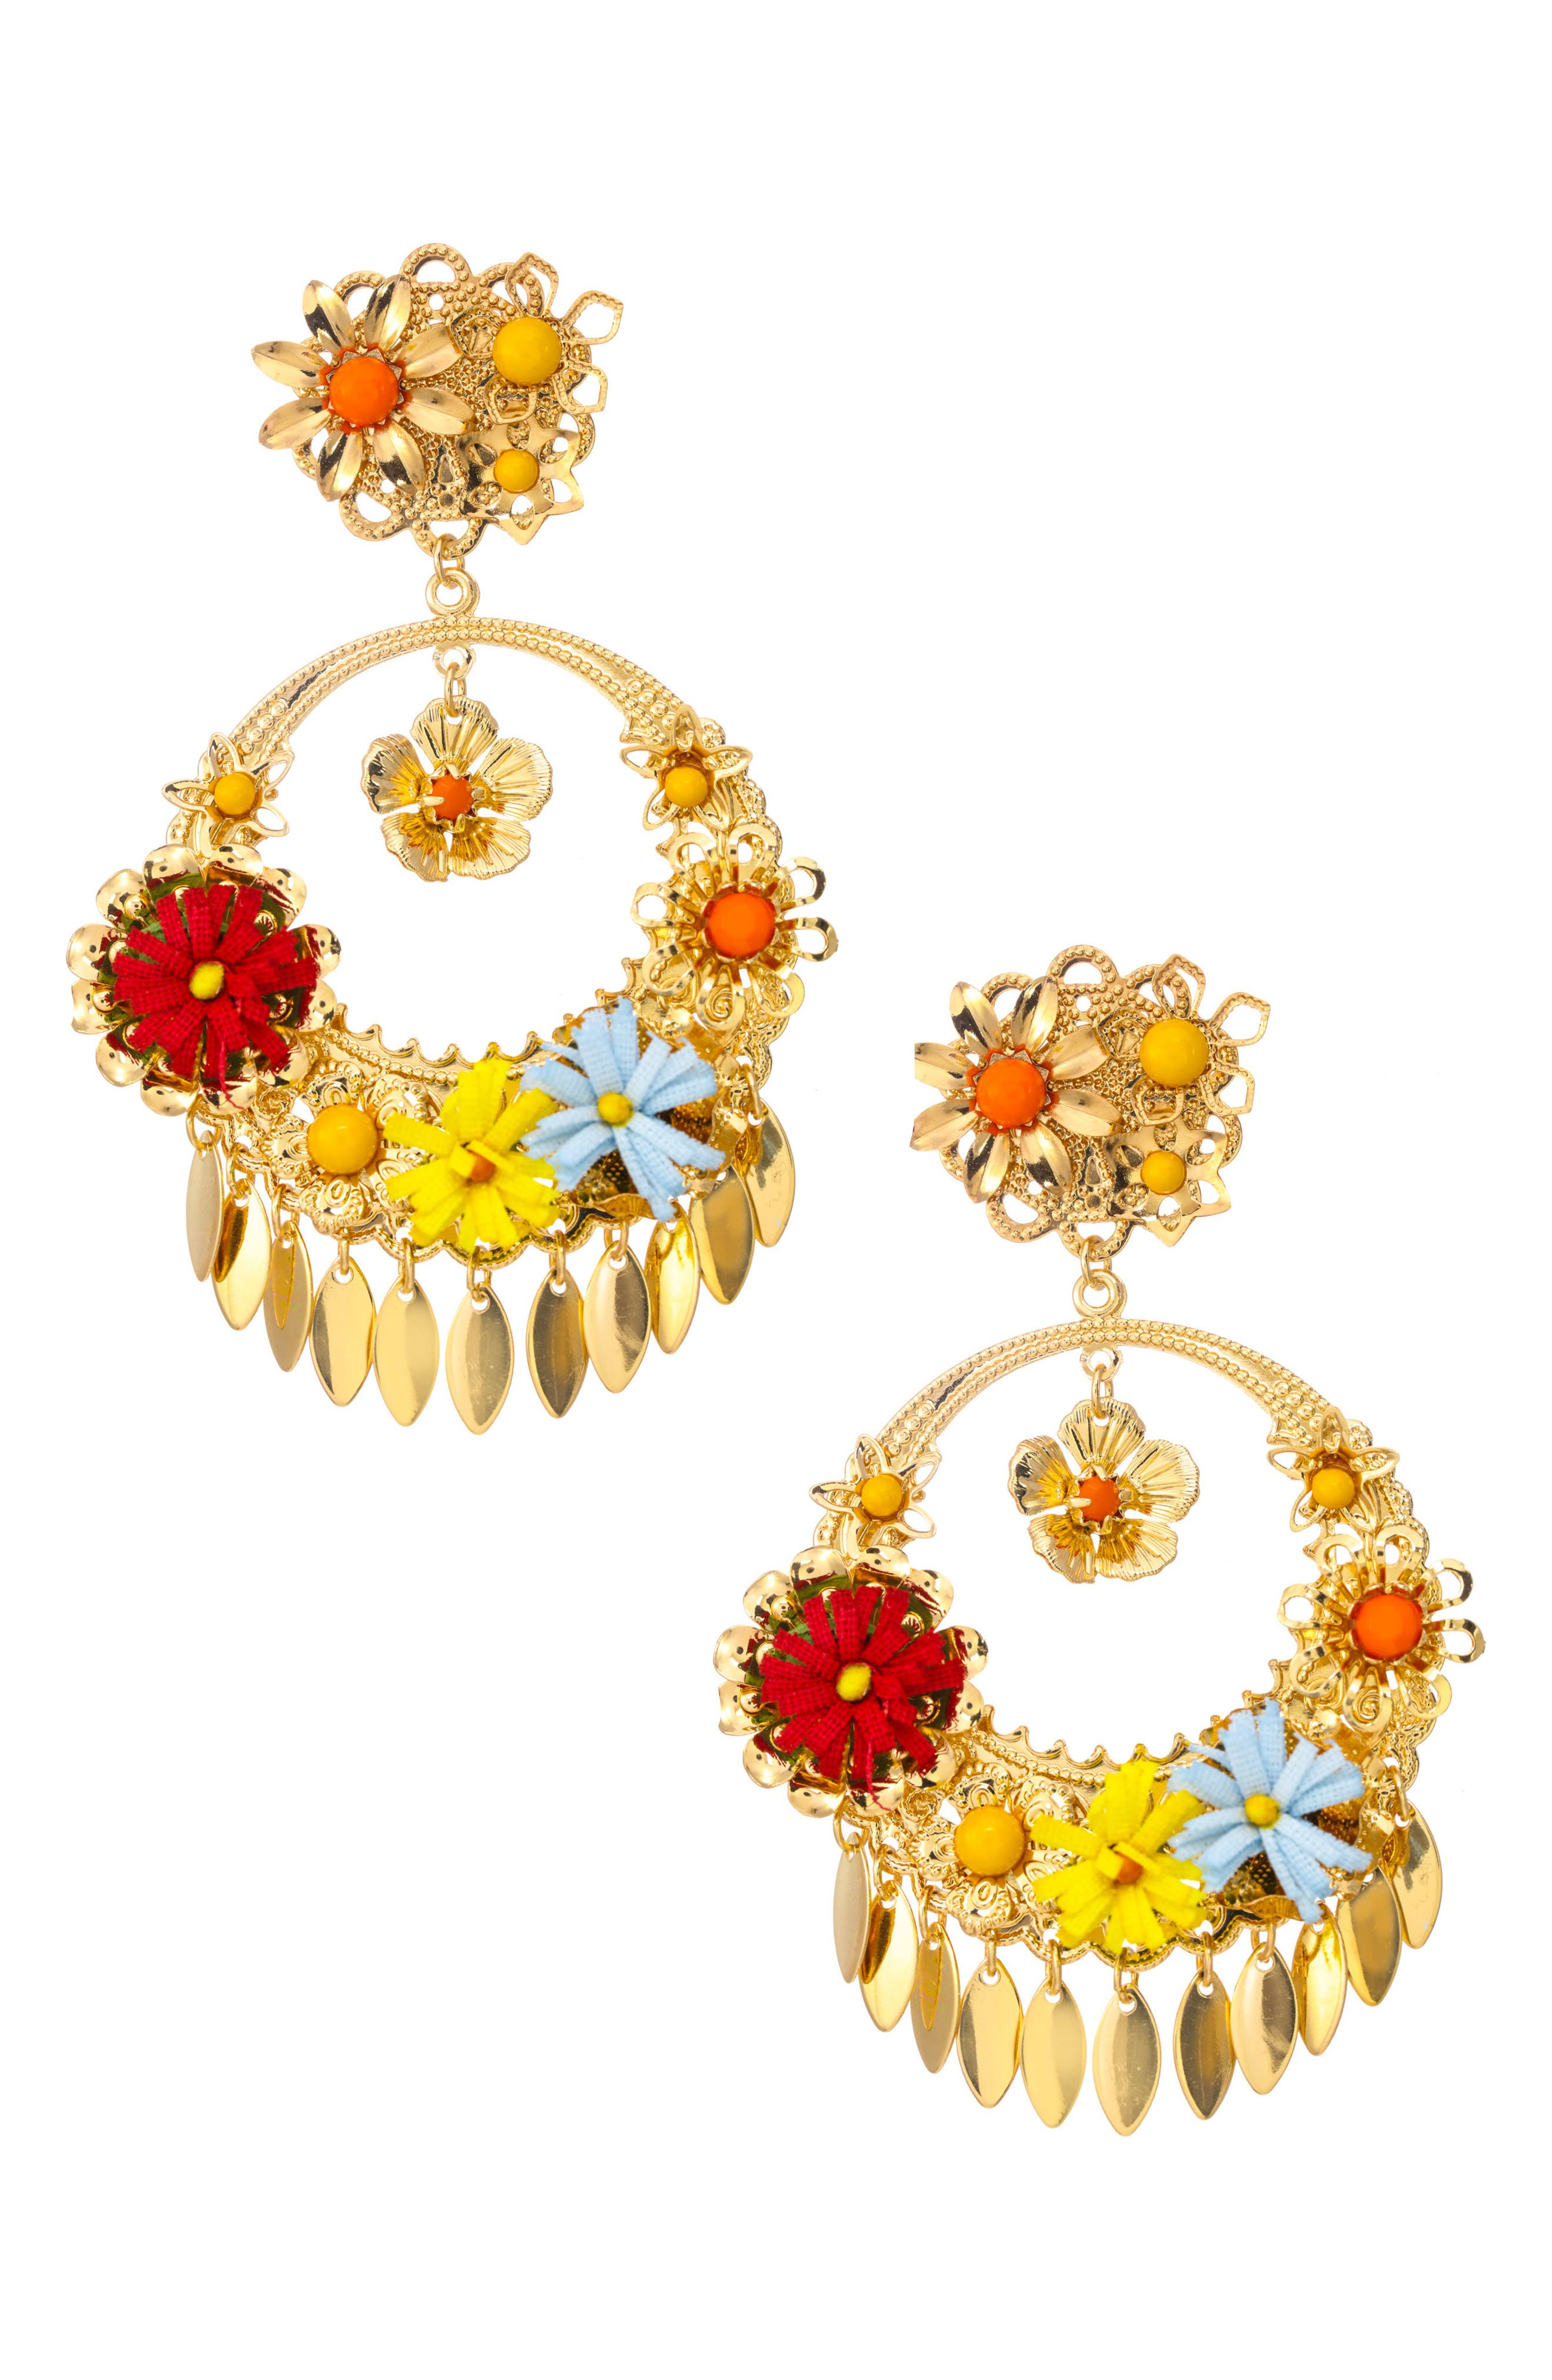 Dolce Statement Earrings,                             Main thumbnail 1, color,                             GOLD/ MULTI